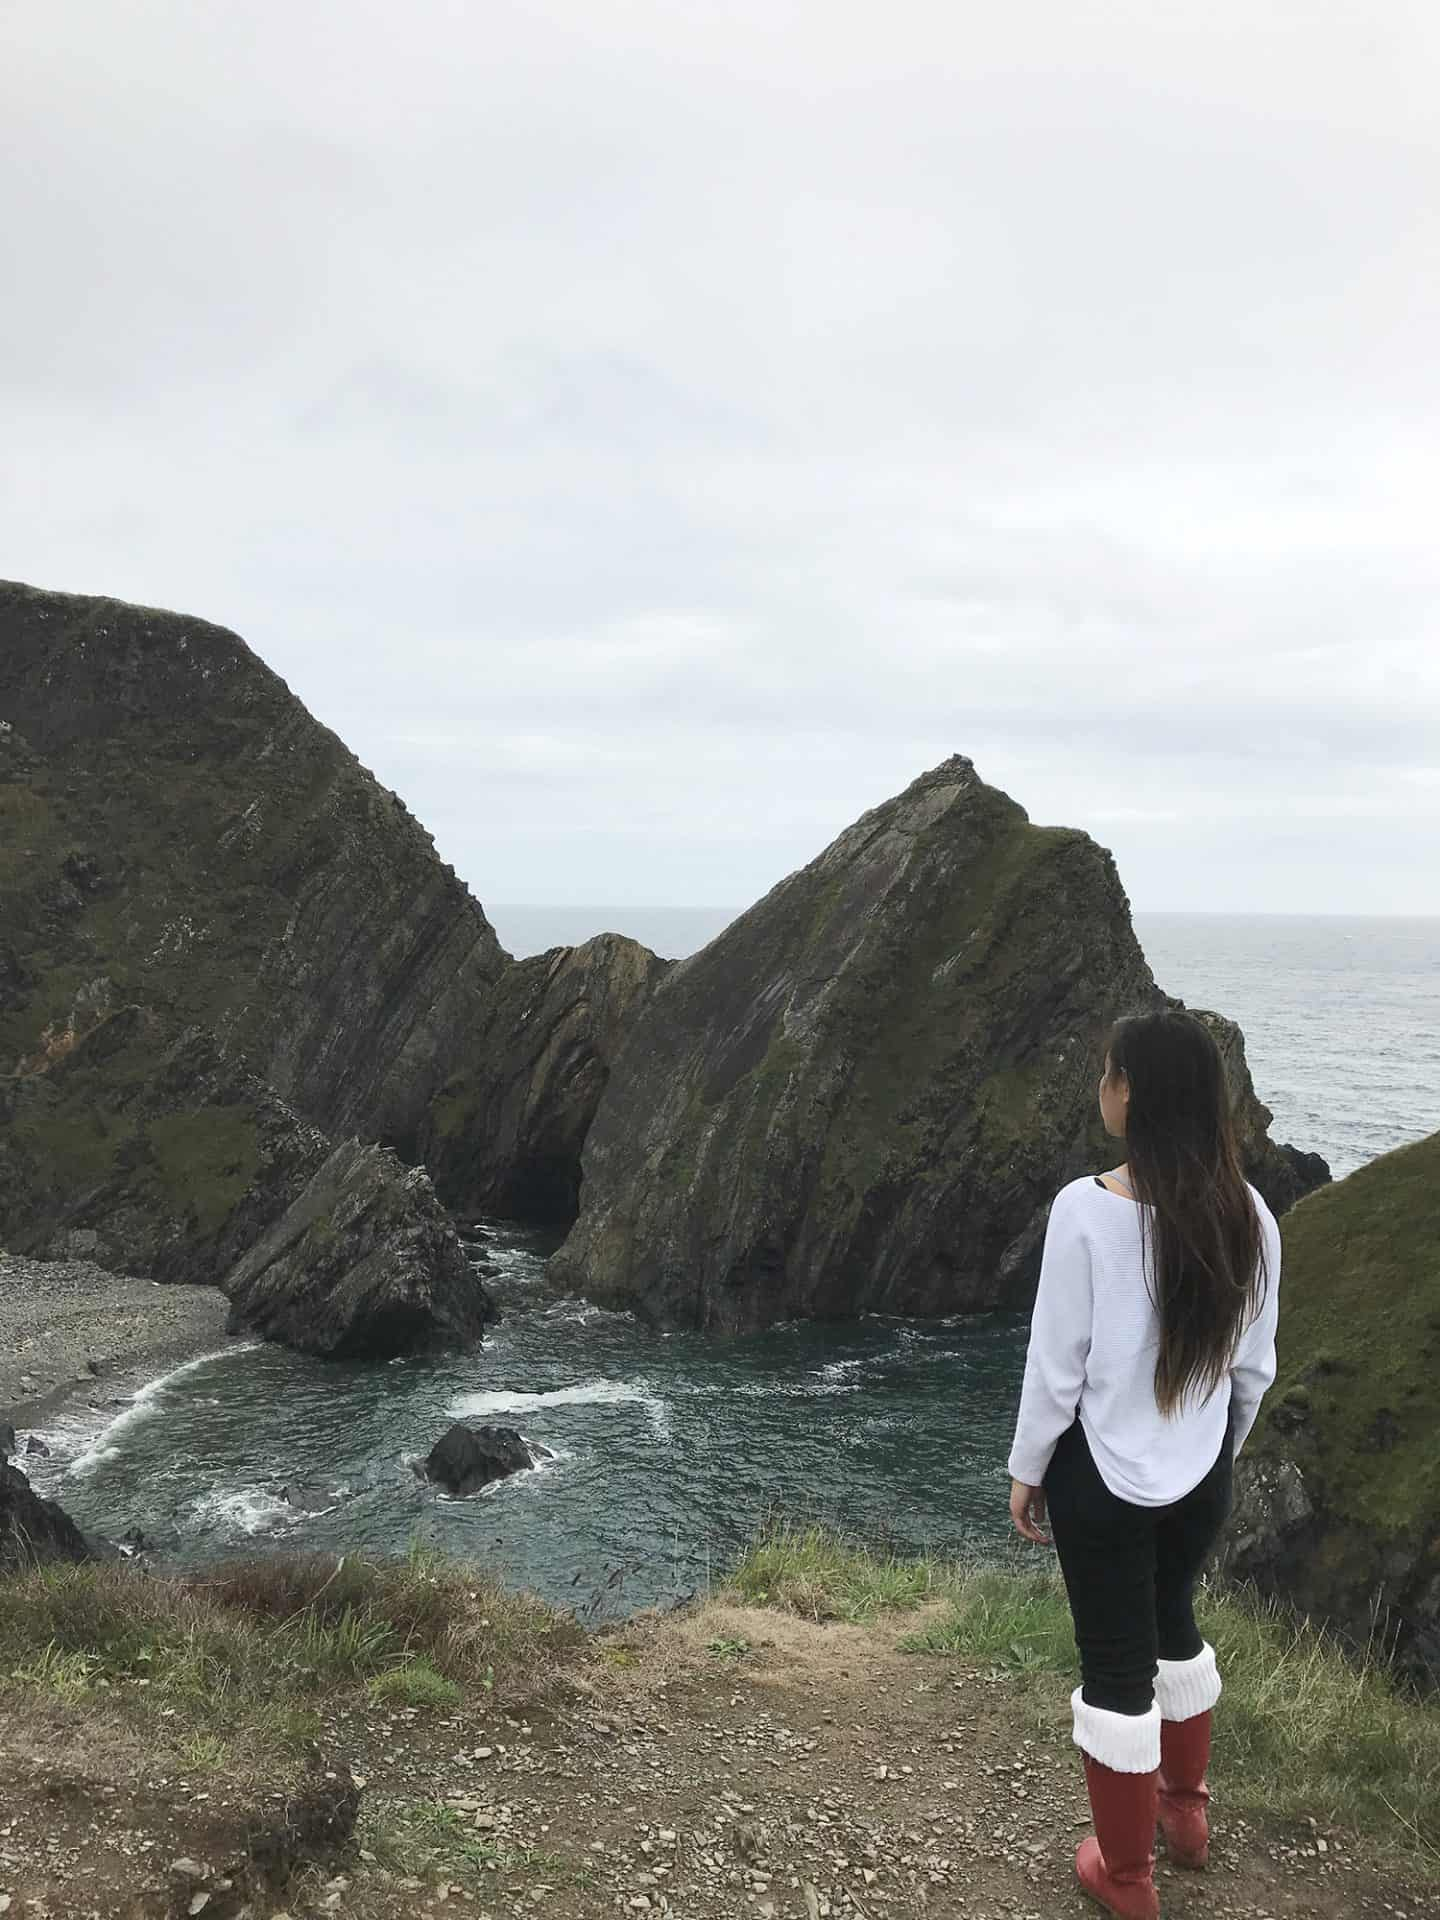 Nohoval Cove in Cork, Ireland